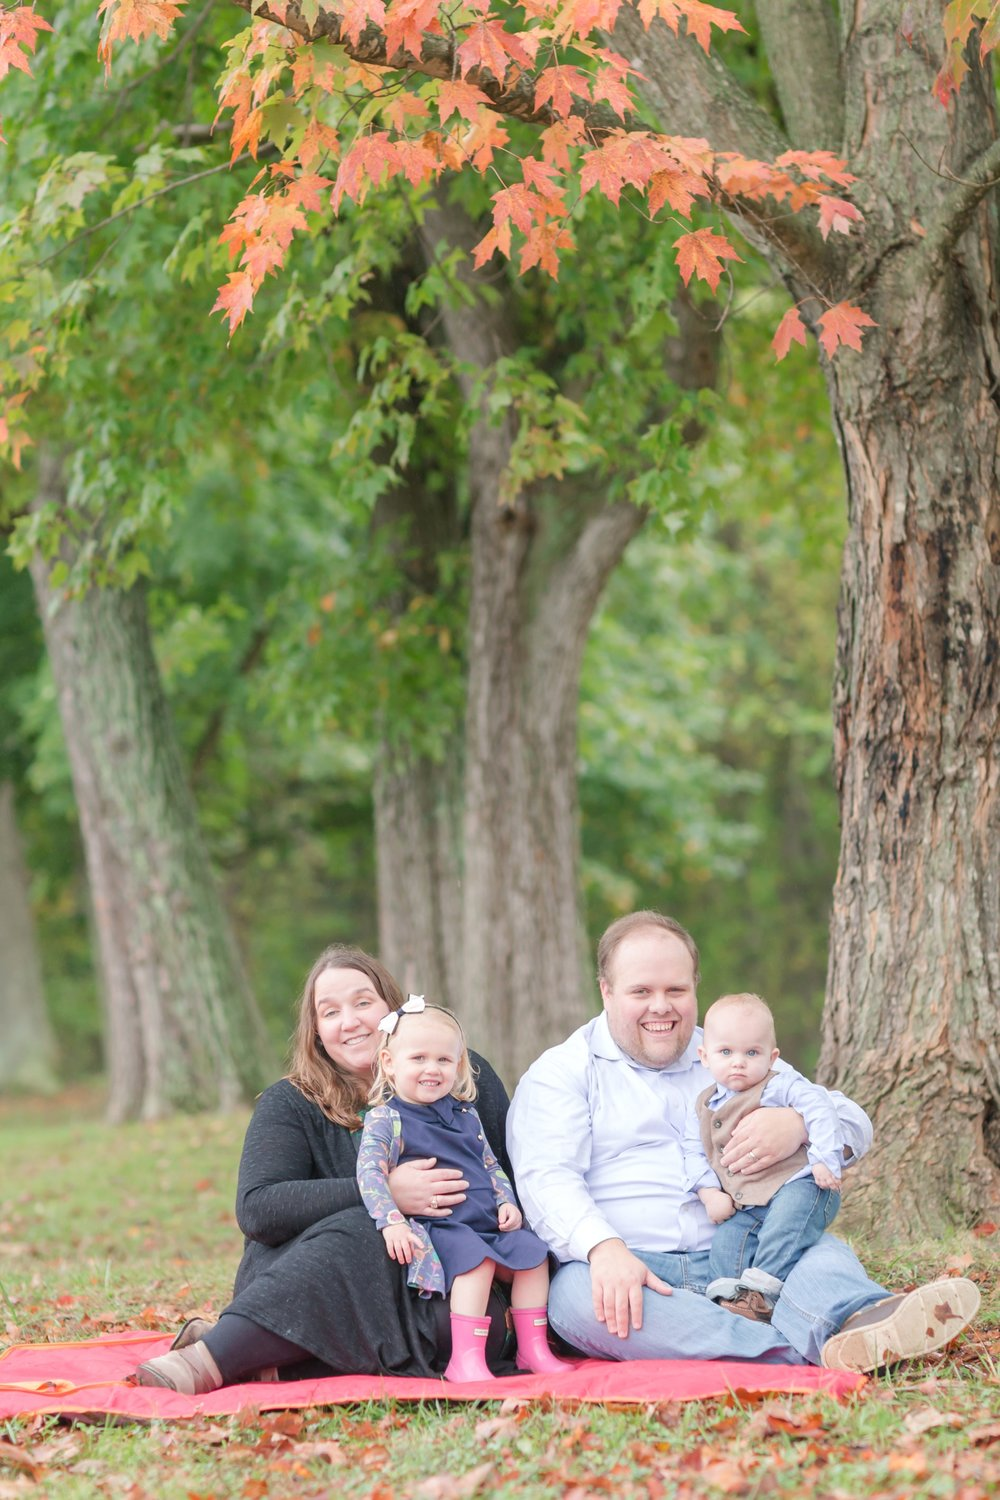 Maple Family 2017-49_oregon-ridge-park-lutherville-maryland-family-photographer-anna-grace-photography-photo.jpg